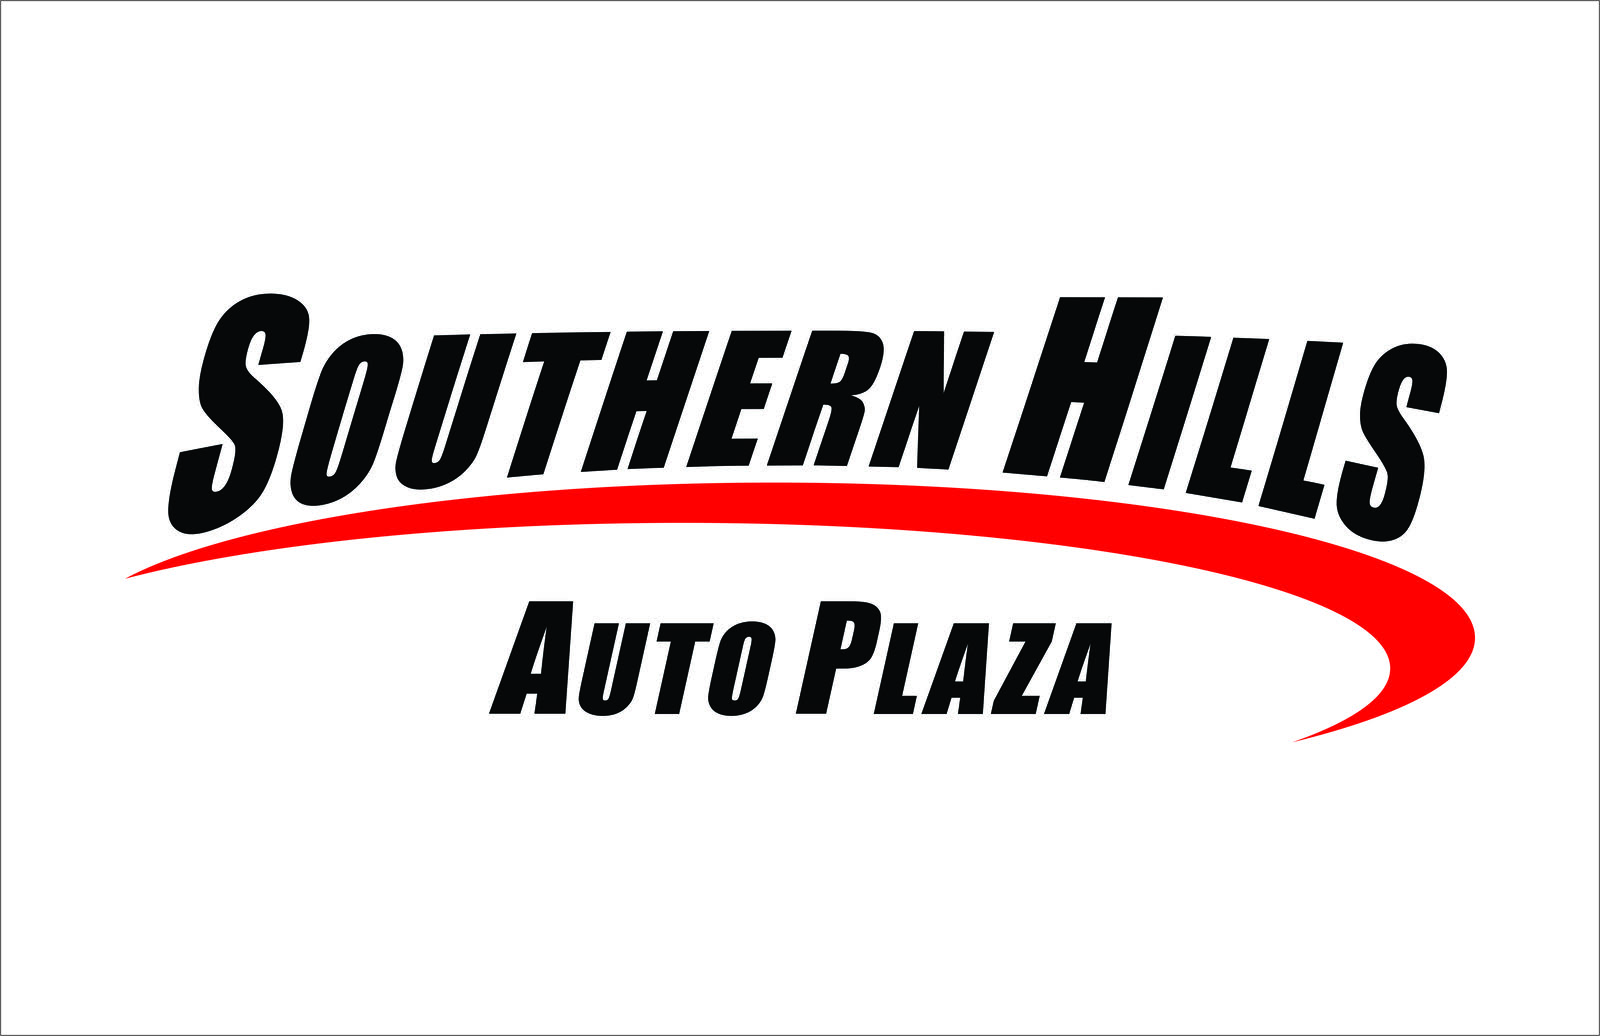 Acura Springfield Mo >> Southern Hills Auto Plaza - West Plains, MO: Read Consumer ...